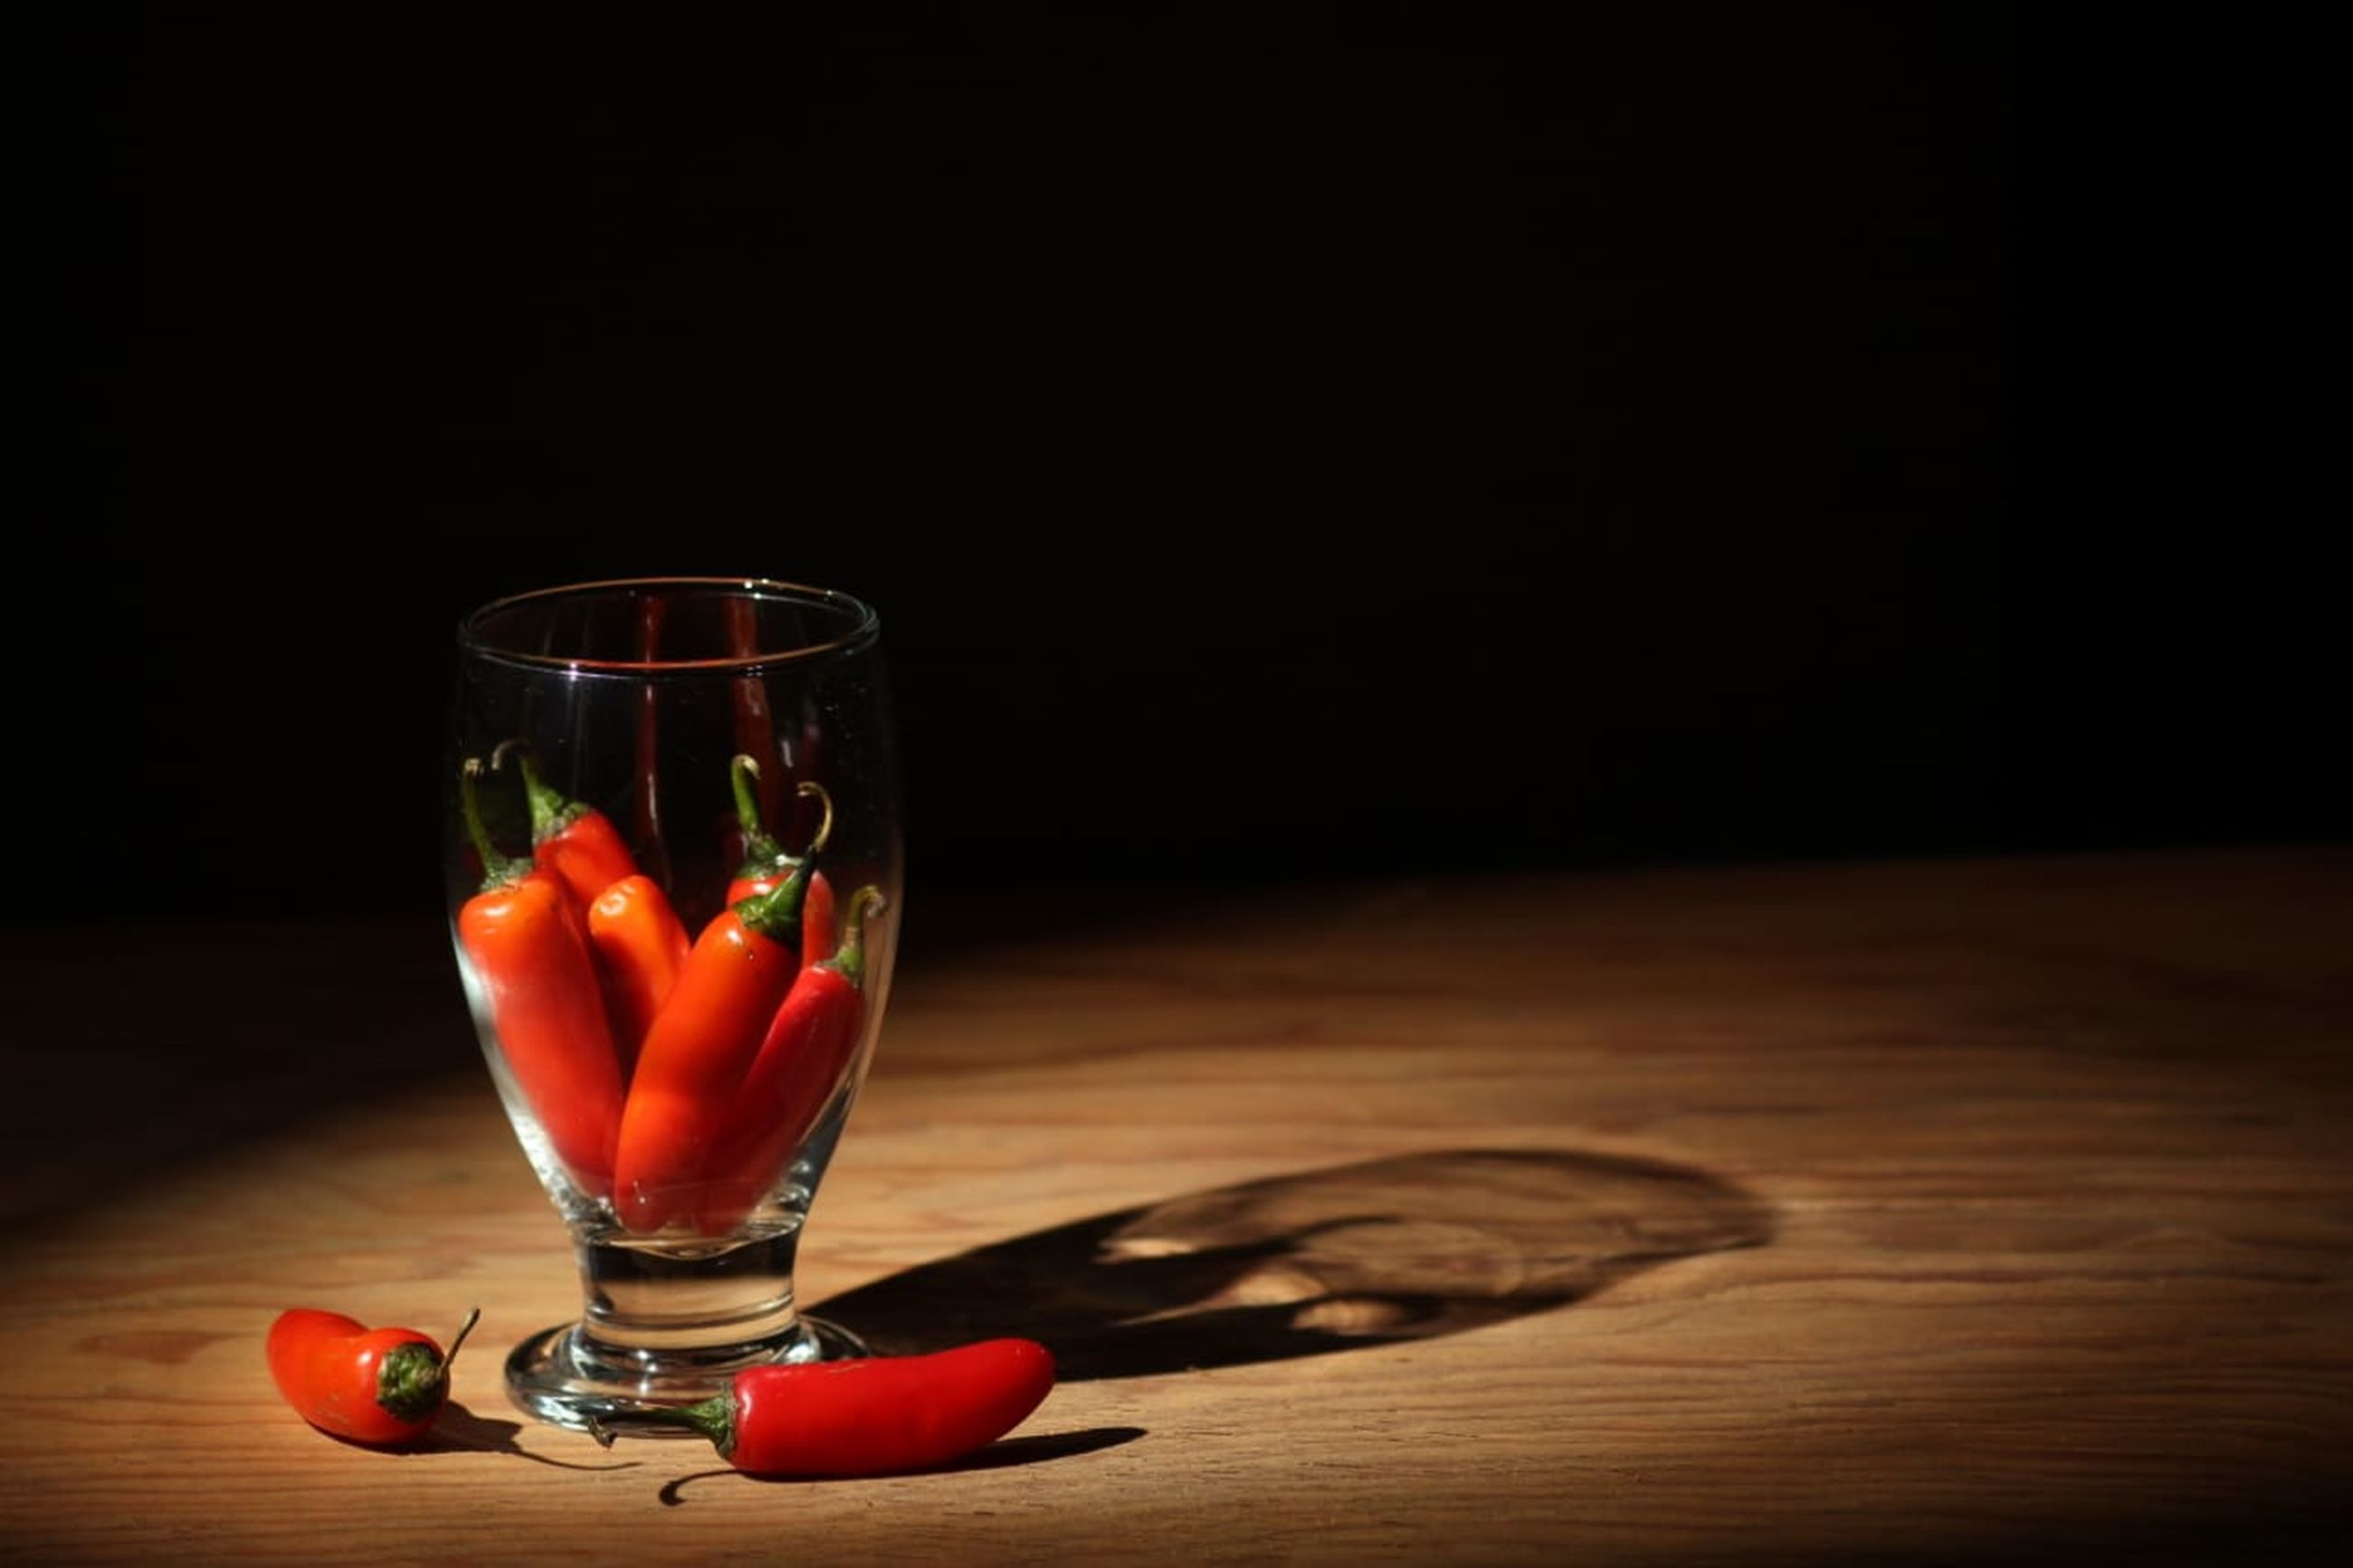 food and drink, red, glass, alcohol, drink, refreshment, alcoholic beverage, drinking glass, household equipment, food, still life photography, wood, indoors, fruit, table, freshness, no people, healthy eating, still life, copy space, cocktail, black background, studio shot, macro photography, wellbeing, wine glass